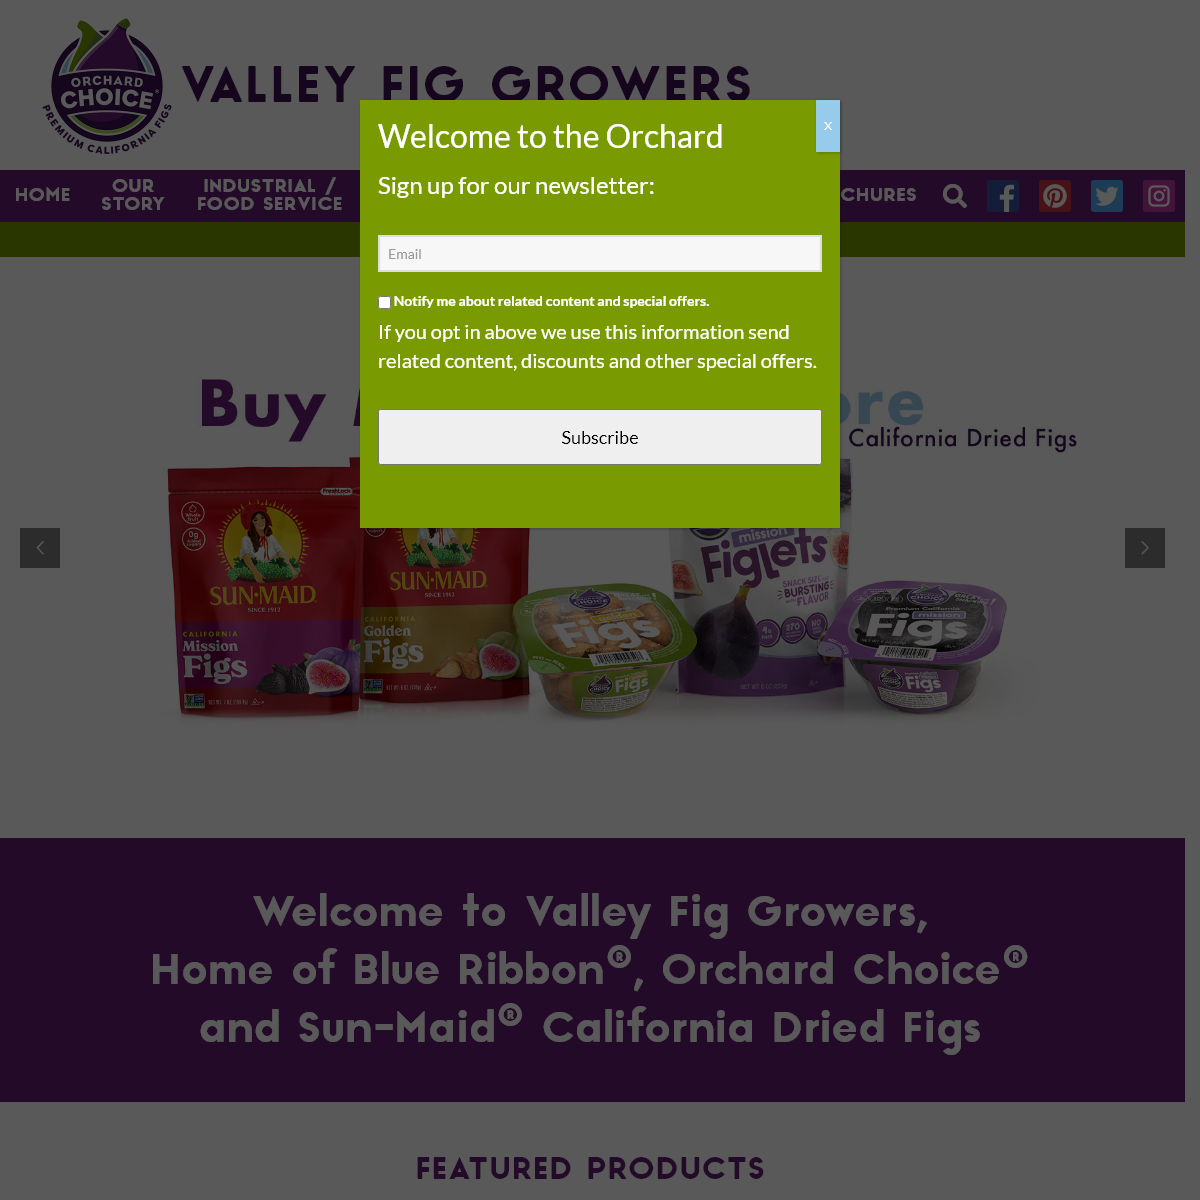 California Figs - California Dried Figs - Valley Fig Growers